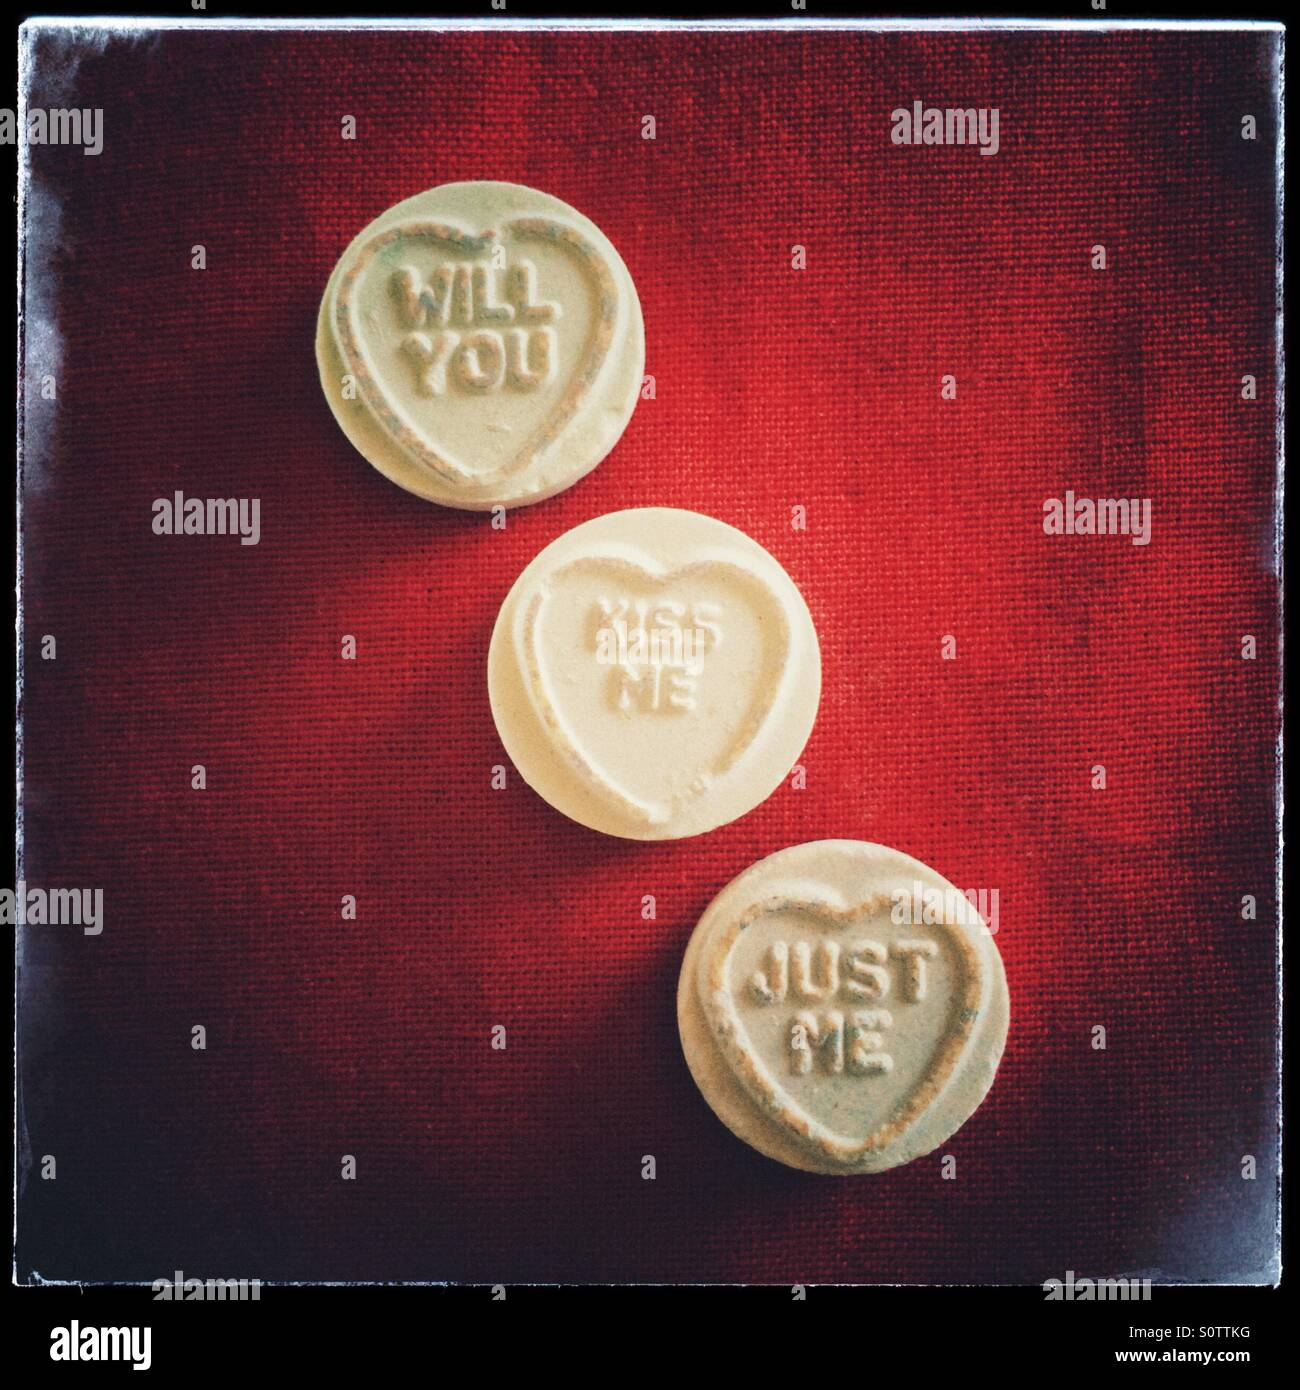 Will you, kiss me, just me, loveheart sweets. - Stock Image